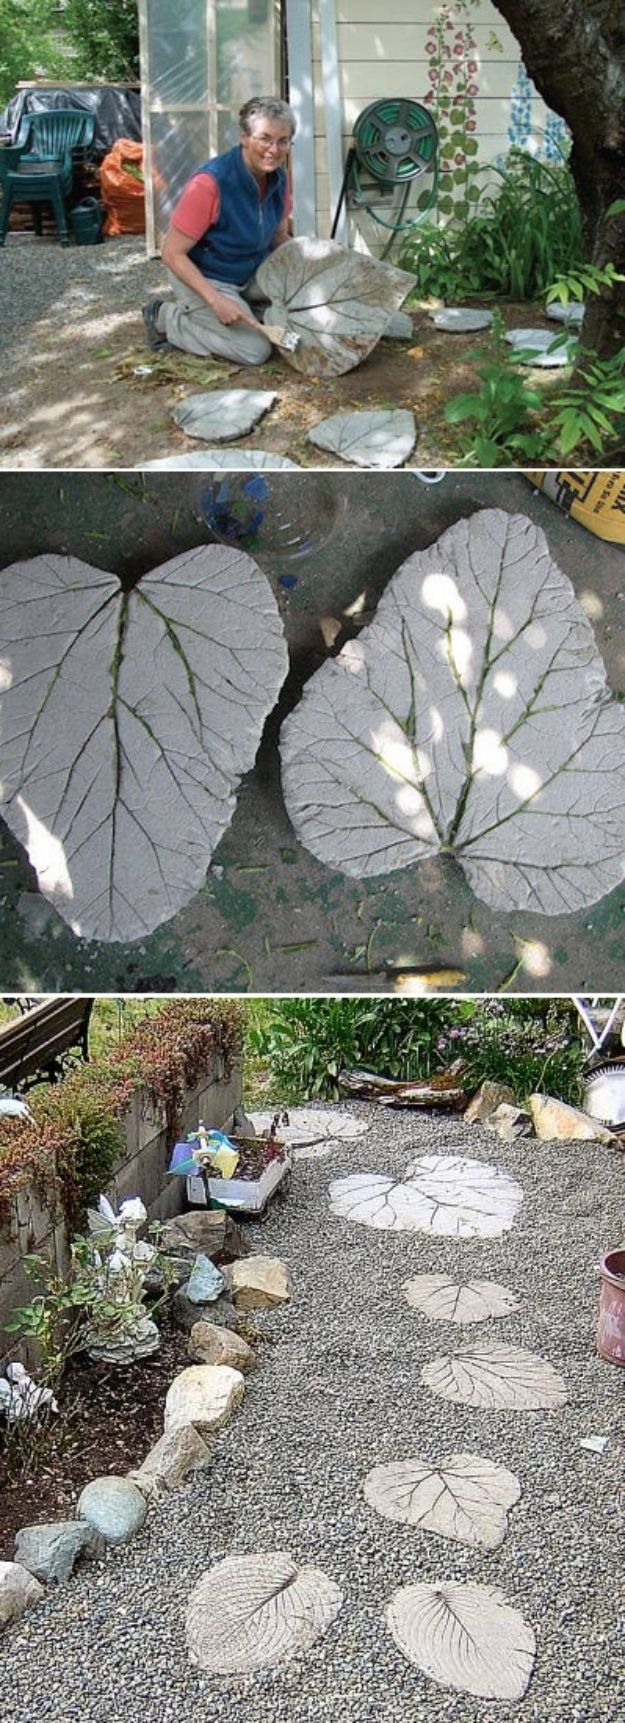 DIY Walkways - Rhubarb Leaf Stepping Stones - Do It Yourself Walkway Ideas for Paths to The Front Door and Backyard - Cheap and Easy Pavers and Concrete Path and Stepping Stones - Wood and Edging, Lights, Backyard and Patio Walks With Gravel, Sand, Dirt and Brick #diyideas